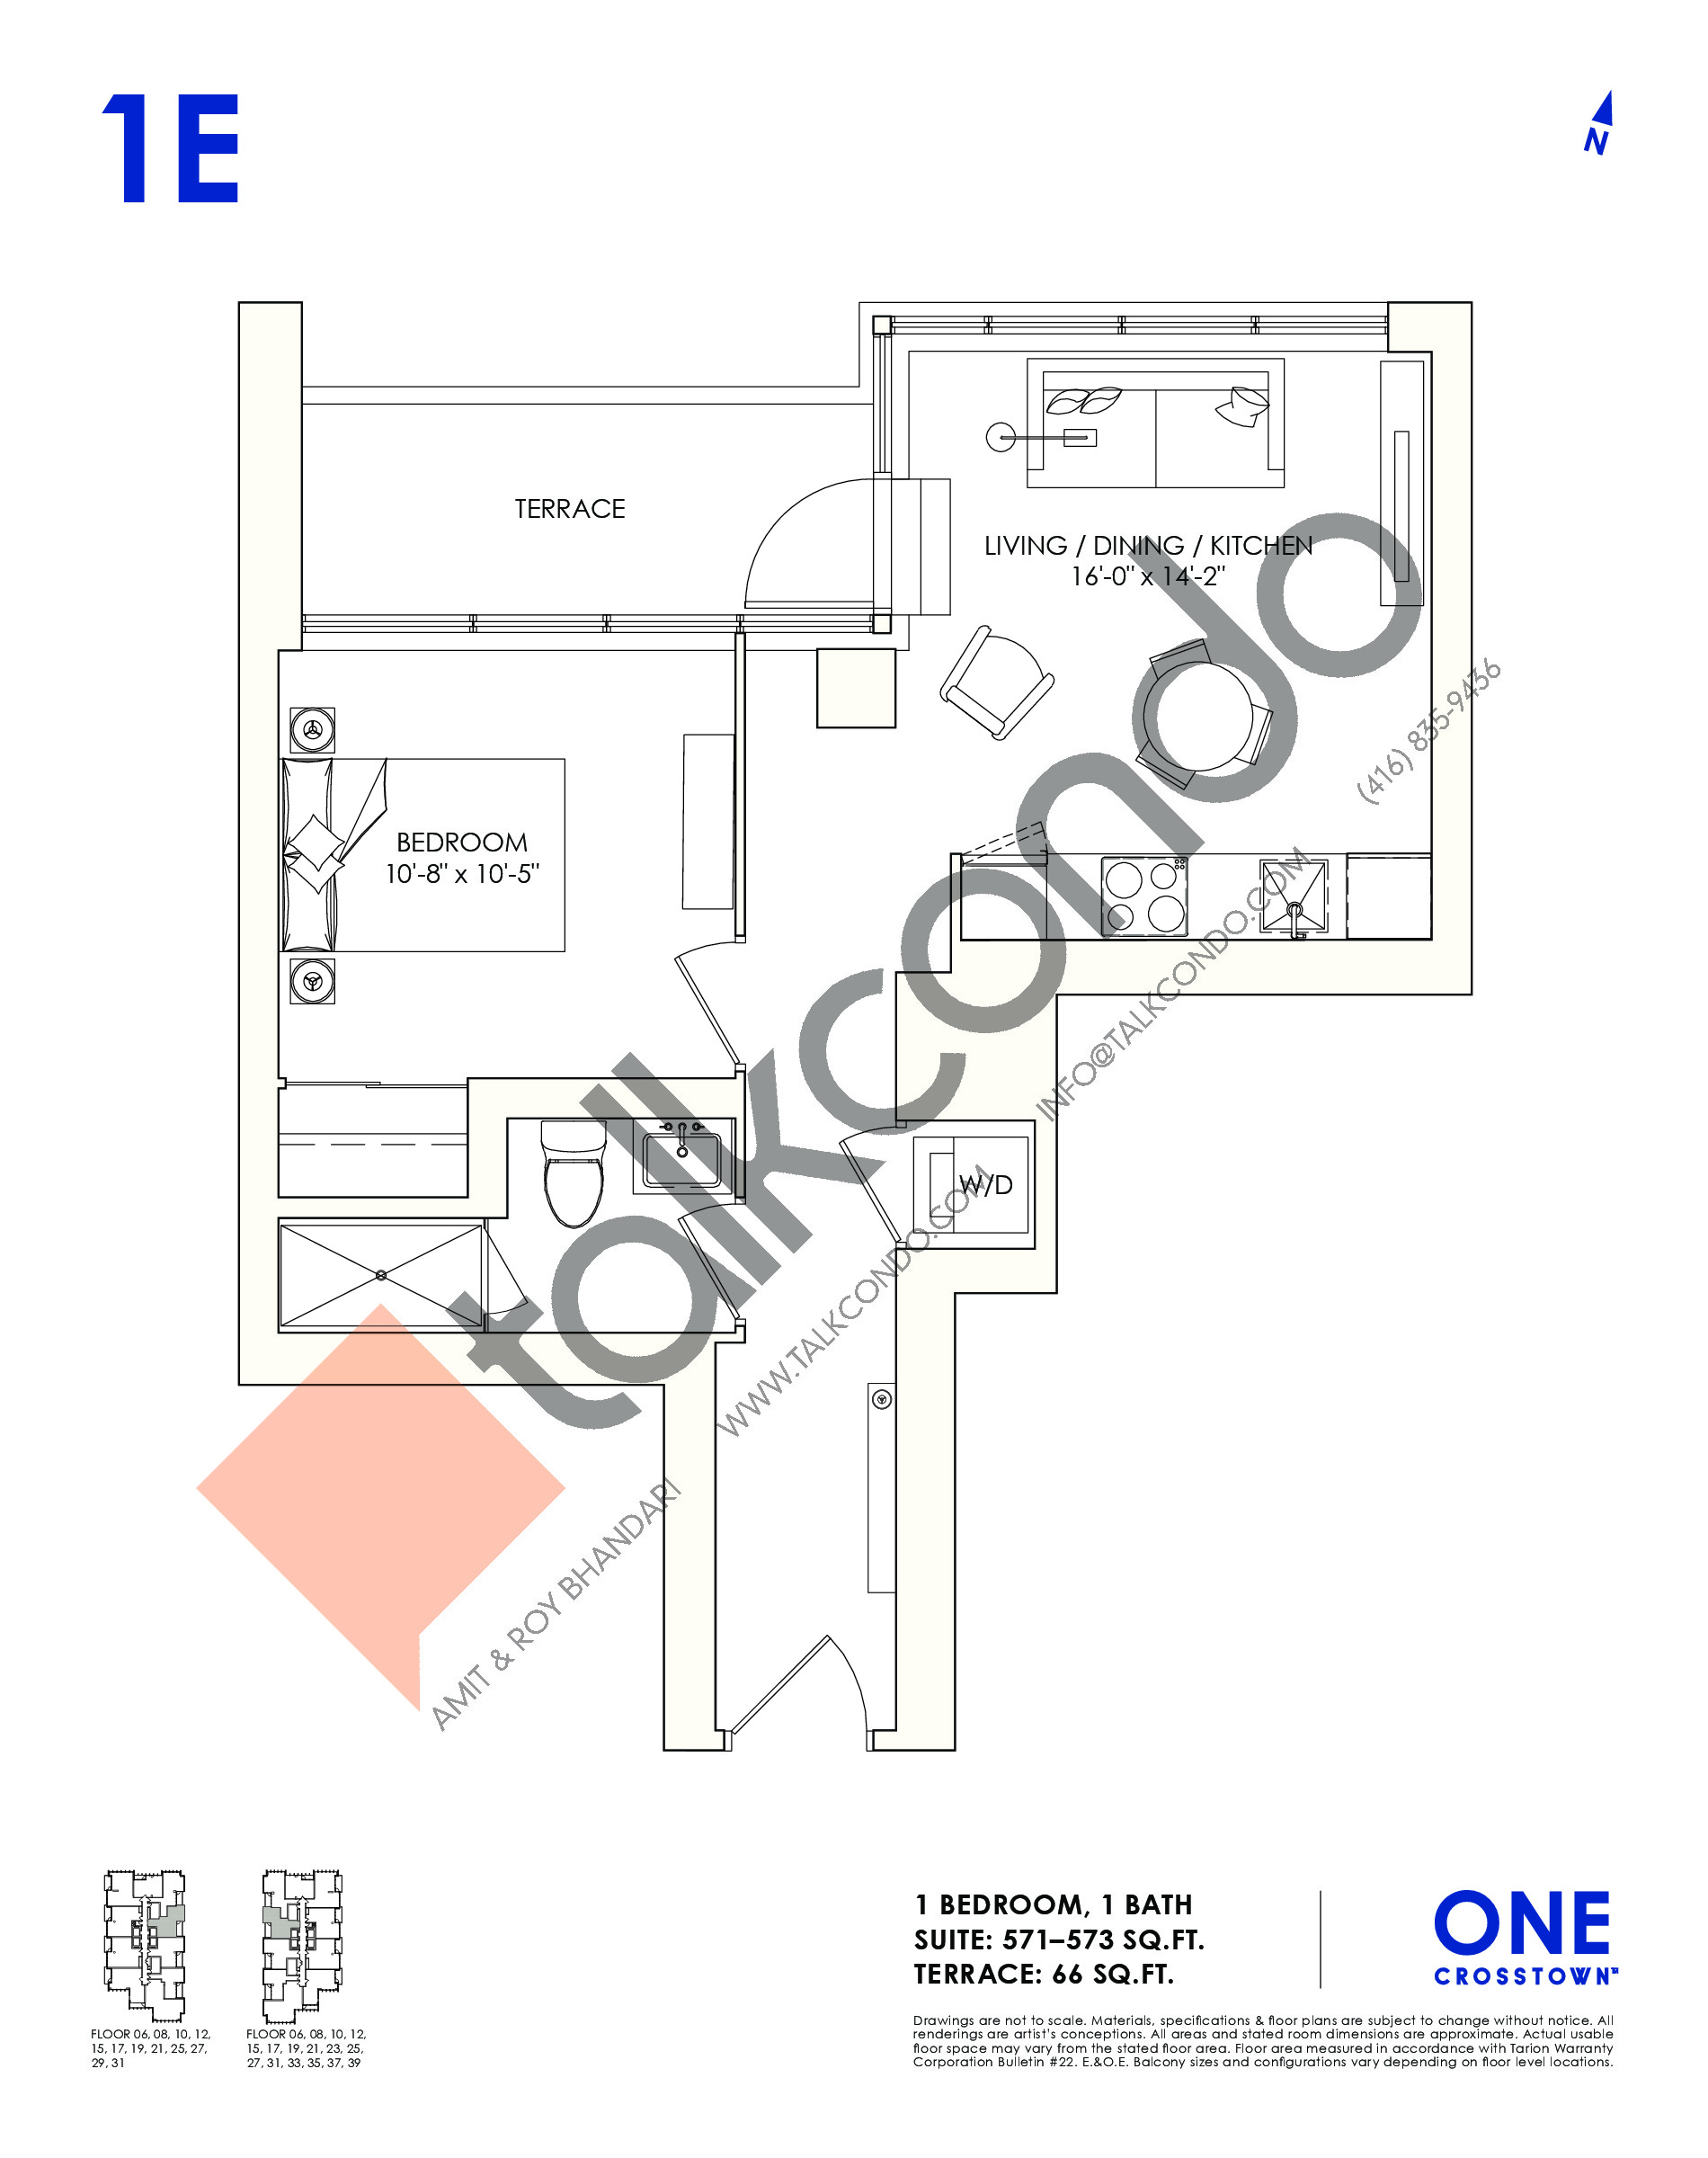 1E Floor Plan at One Crosstown Condos - 573 sq.ft